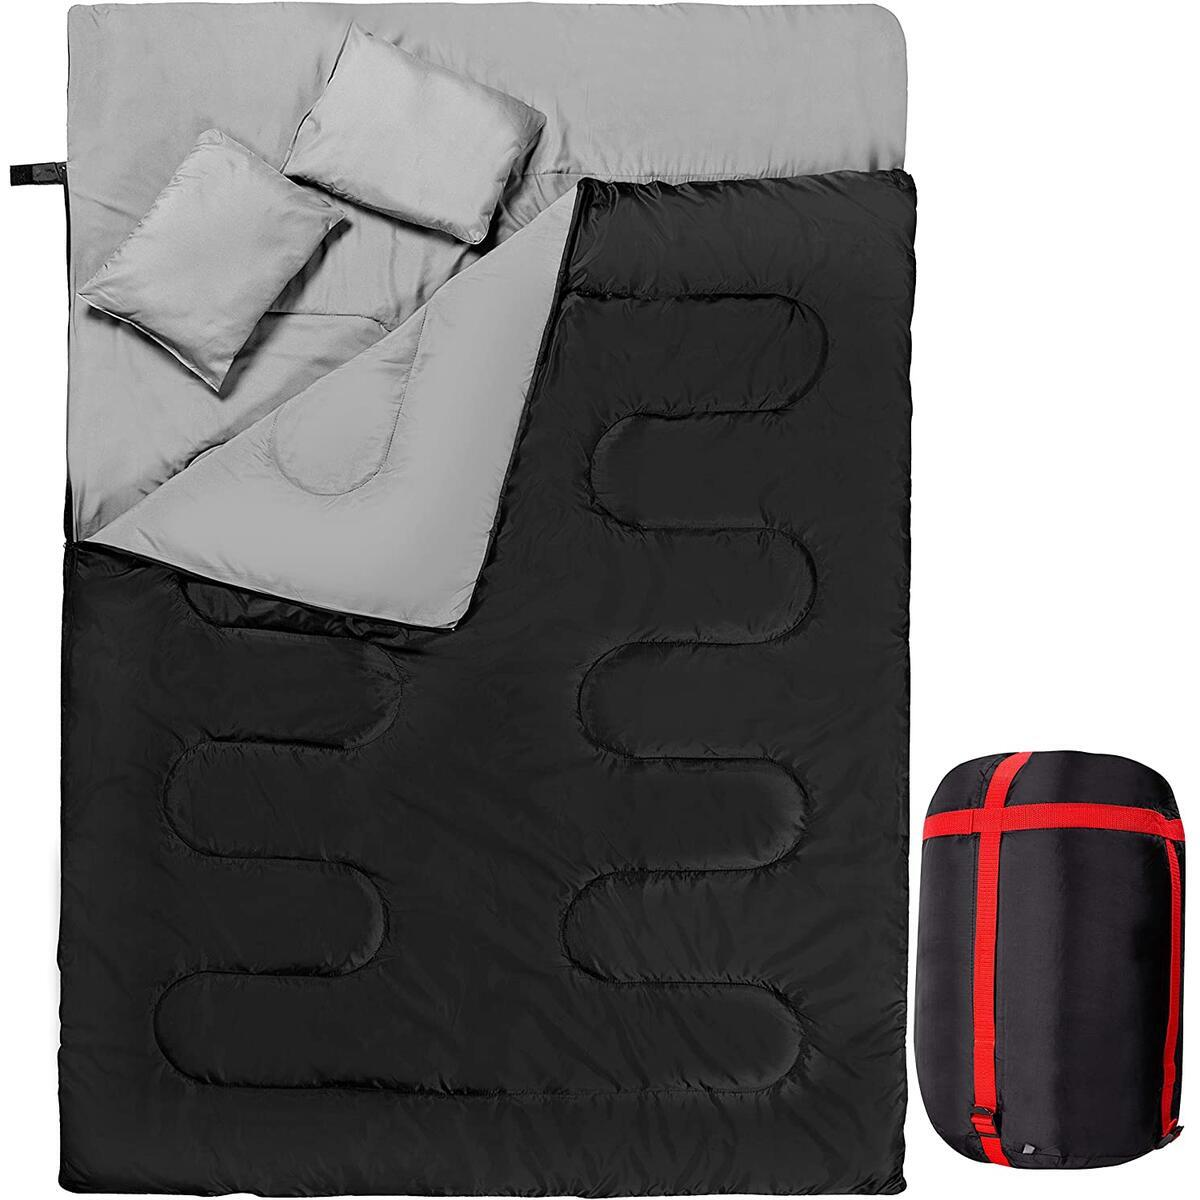 Zento Deals Double Sleeping Bag with 2 Pillows – Queen Size Waterproof Sleeping Bag Good for 2 Persons, Lightweight, for Camping, Cool Weather Backpacking, Hiking, Tent Carrying Bag Outdoors